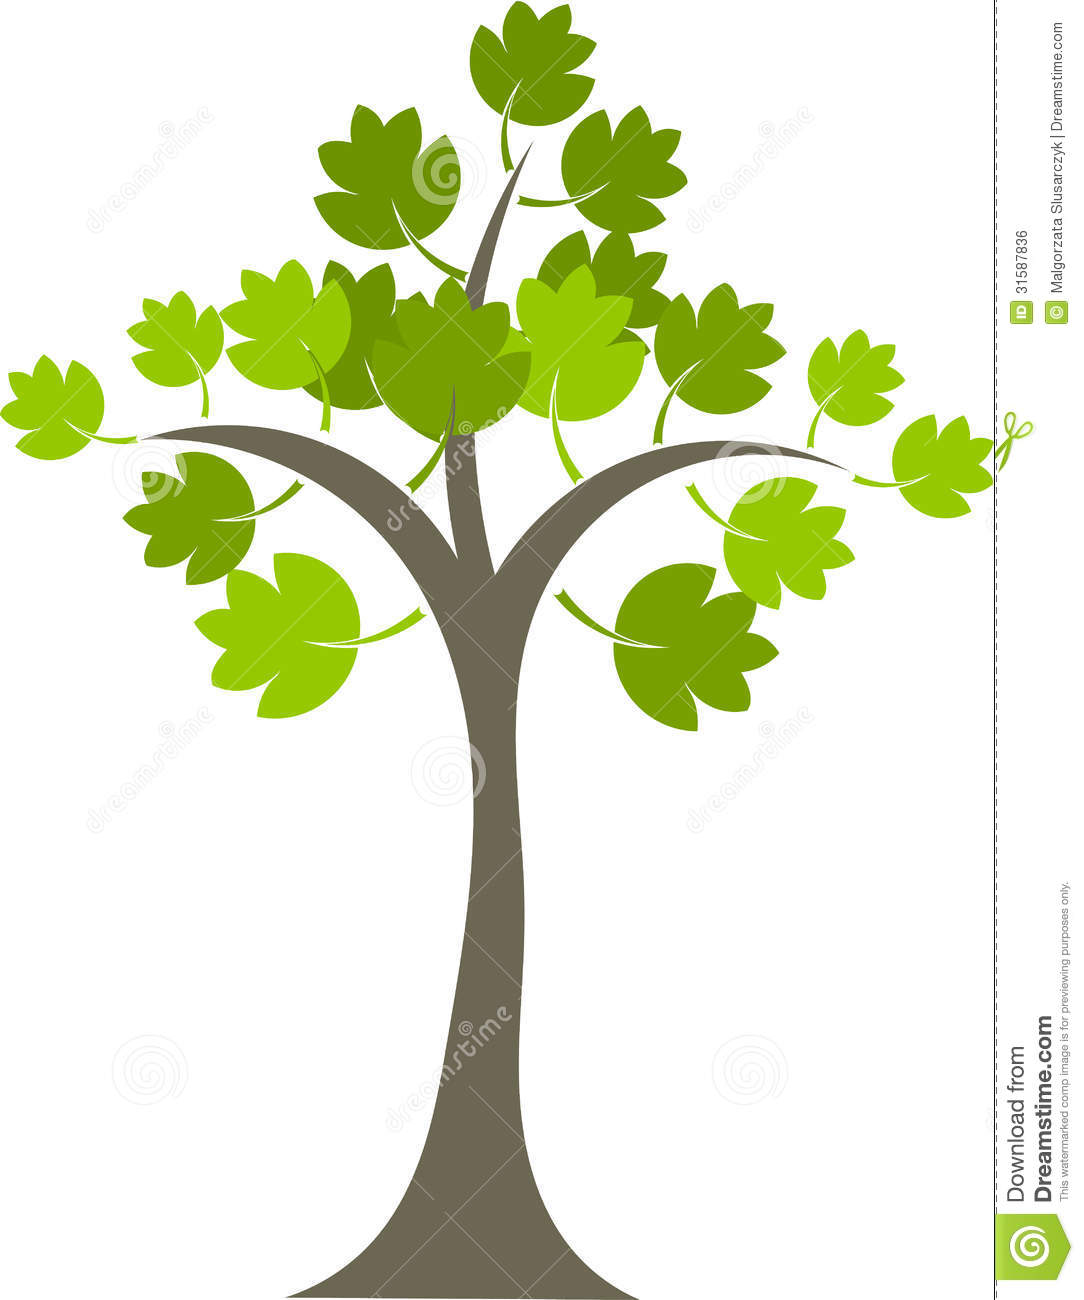 Maple Tree Royalty Free Stock Image Image 31587836